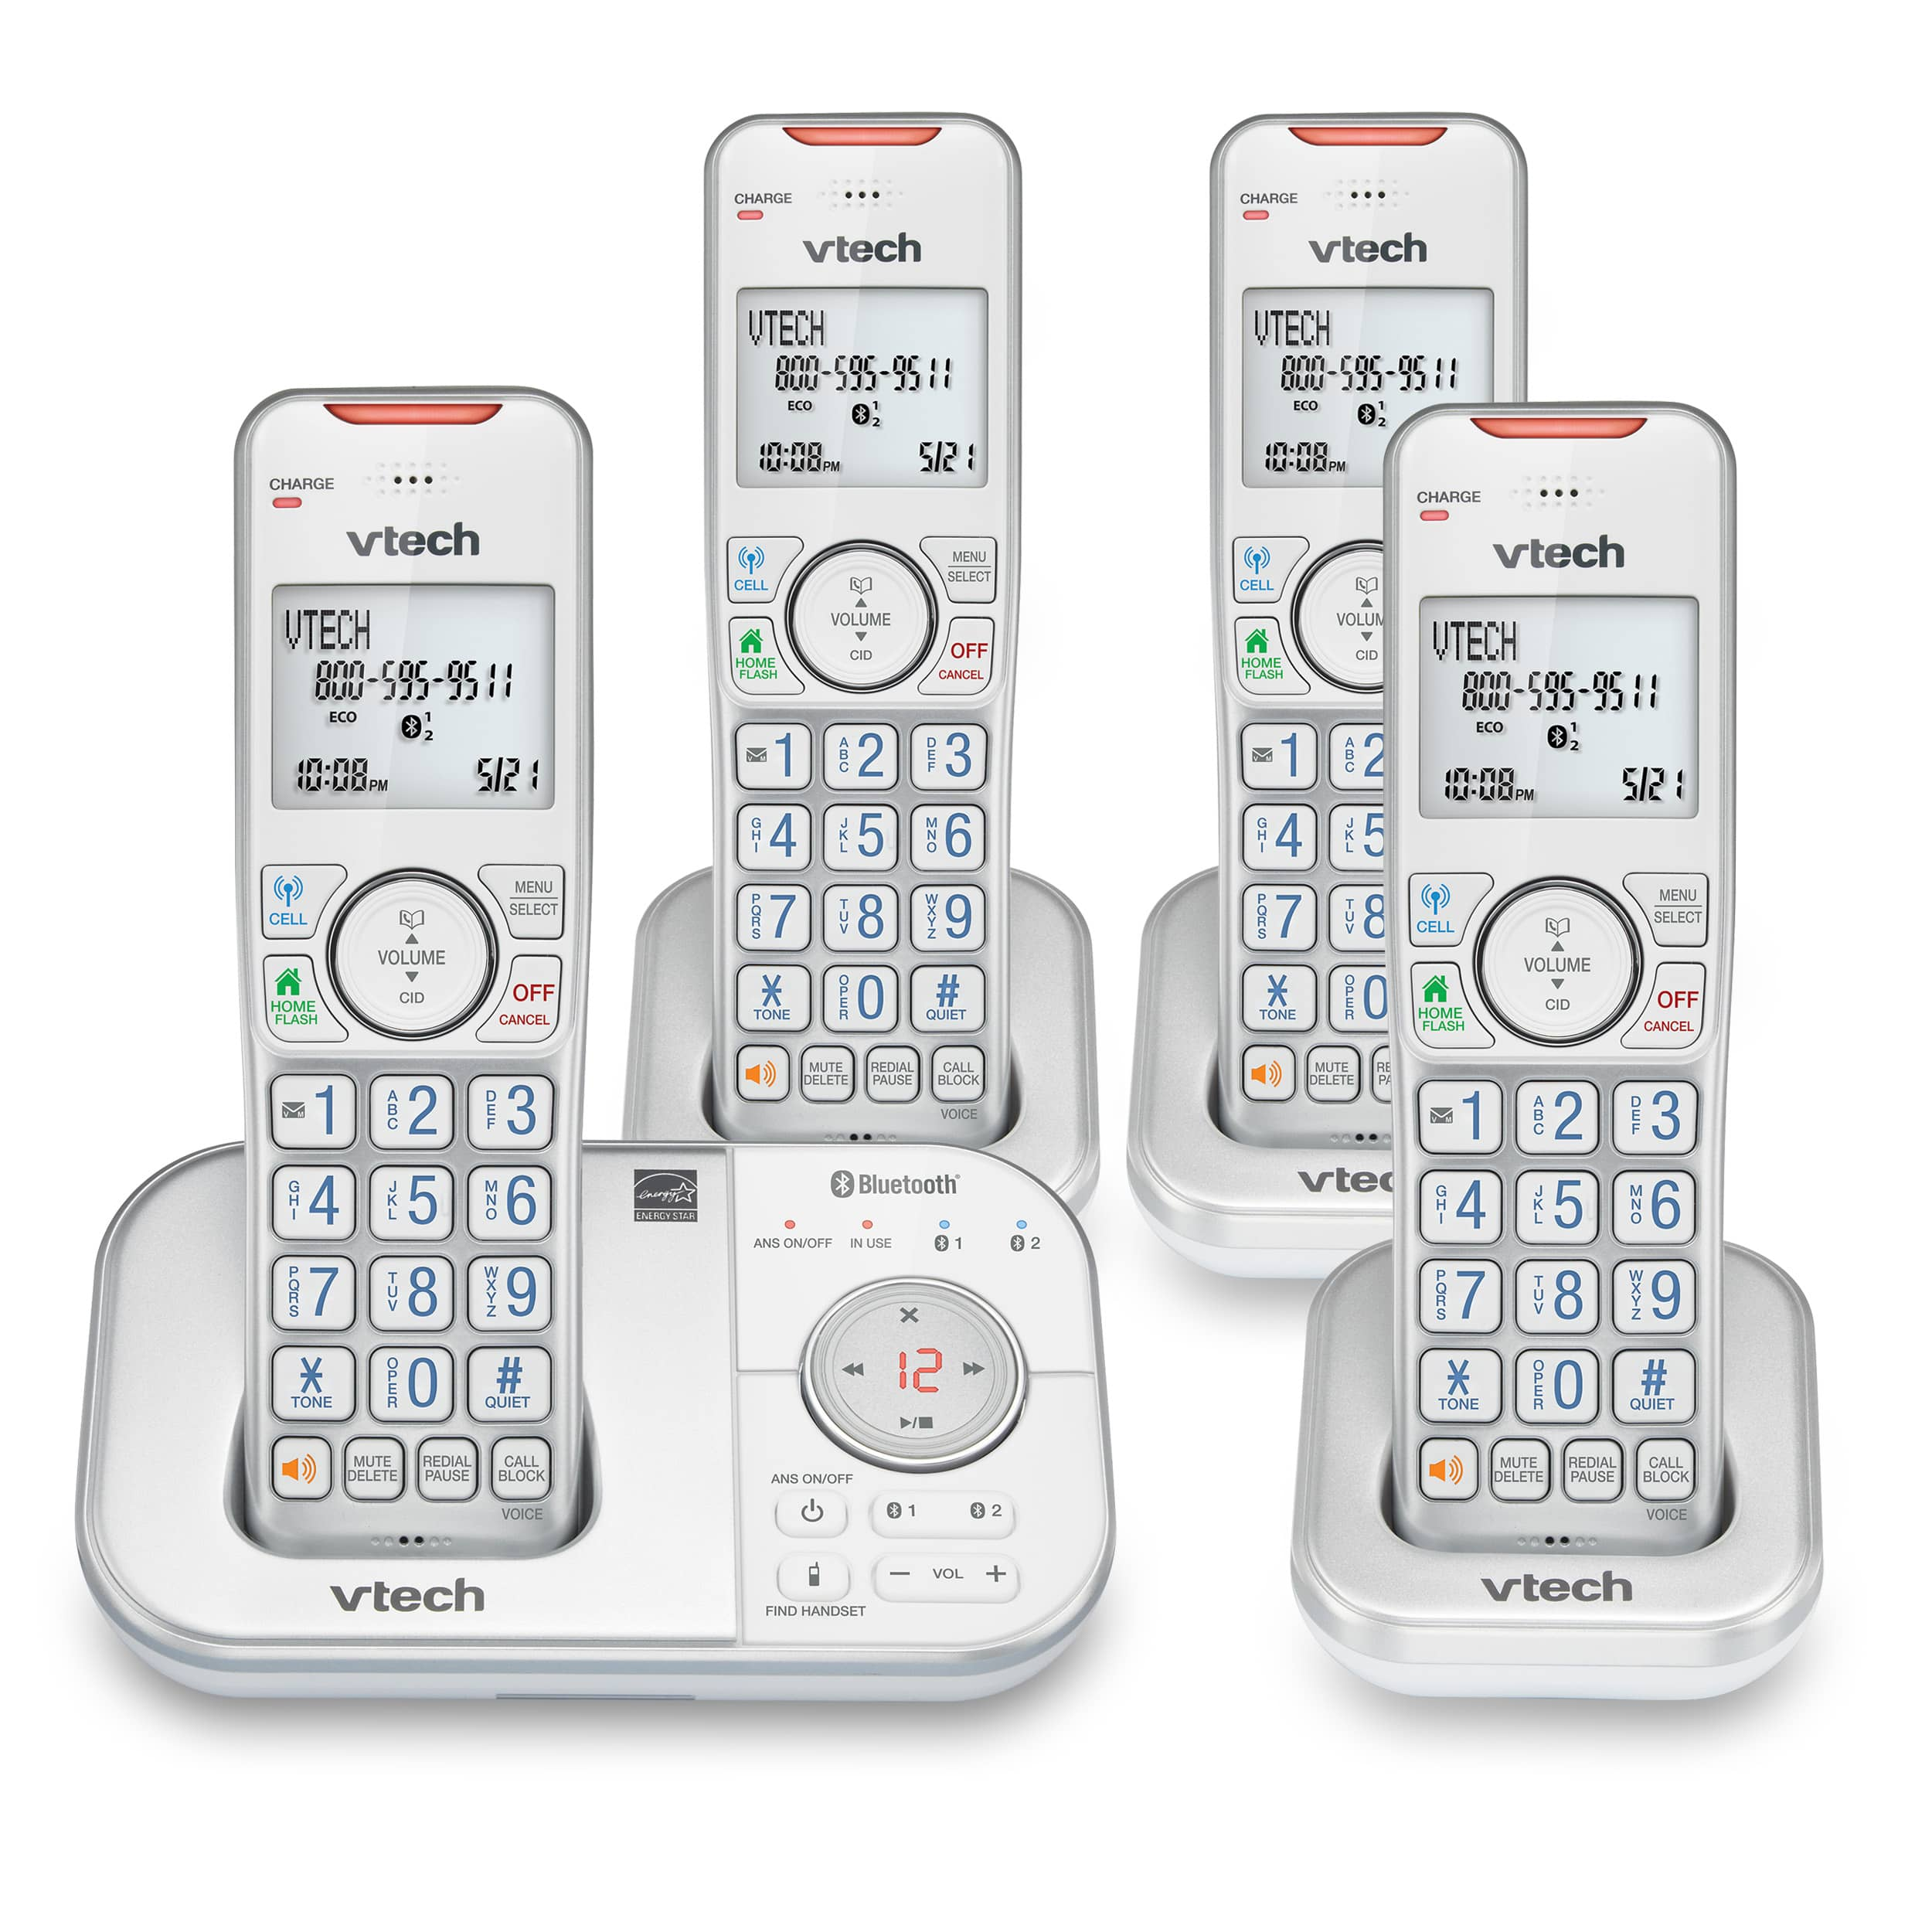 4-Handset Expandable Cordless Phone with Bluetooth Connect to Cell, Smart Call Blocker and Answering System (Silver & White)